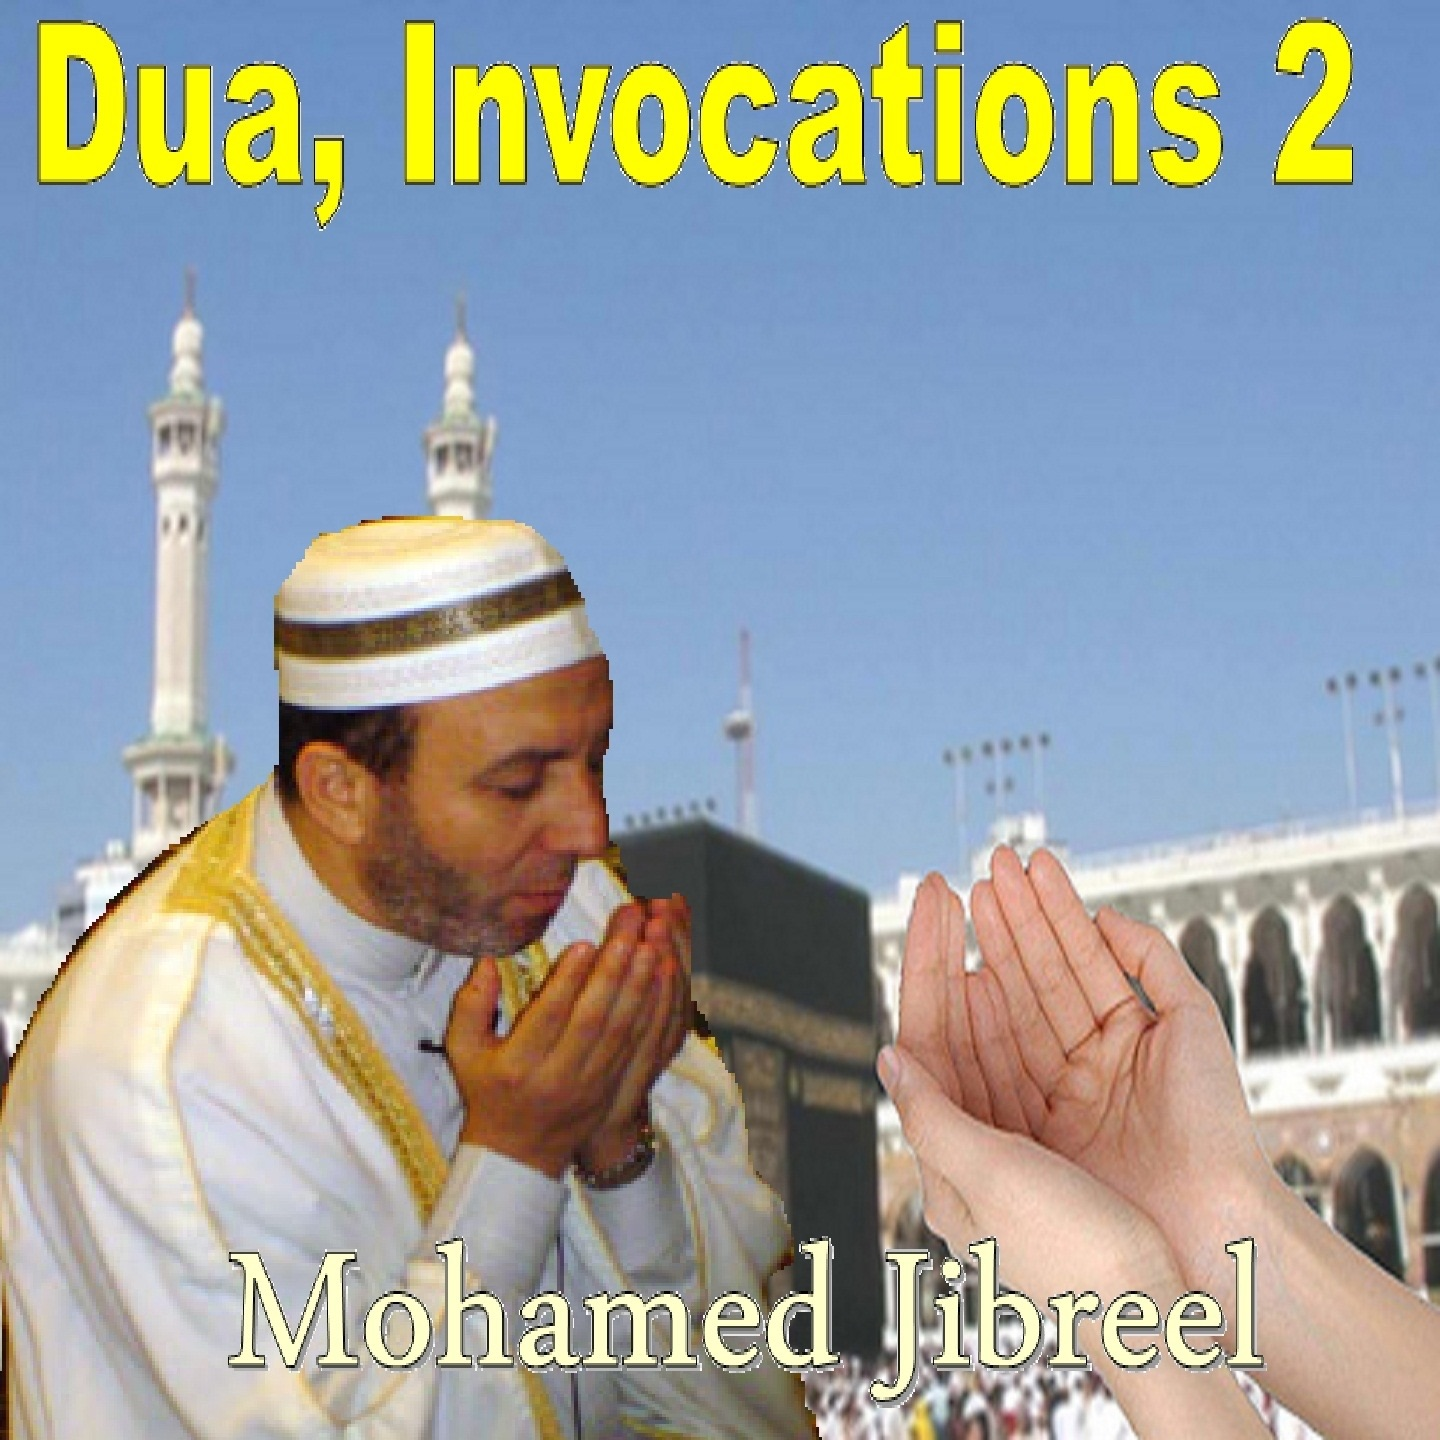 Dua, invocations 2 (Quran)